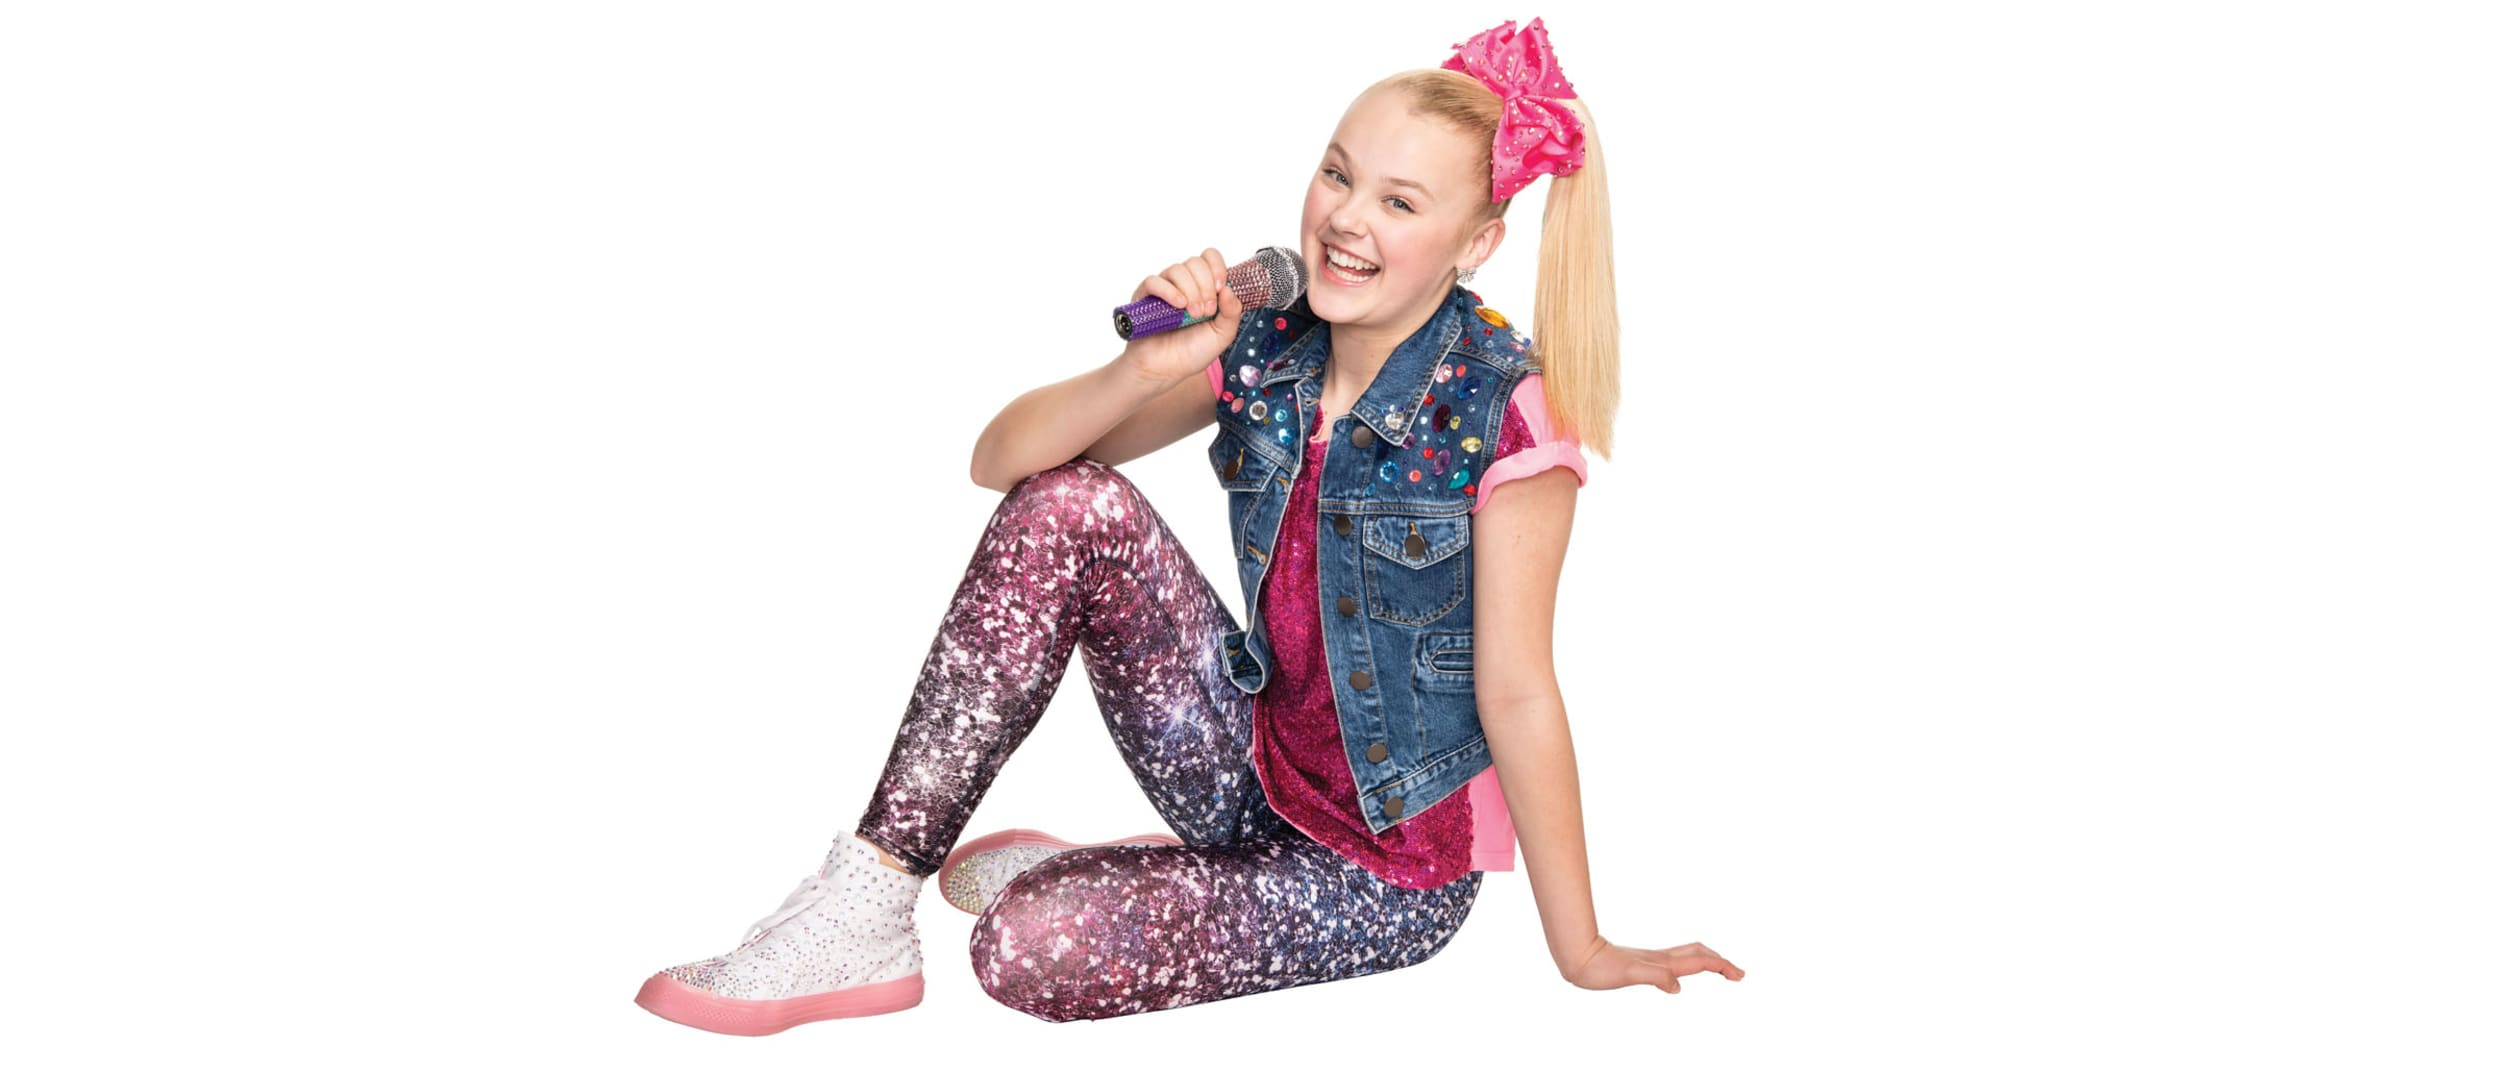 Event Jojo Siwa Live Performance